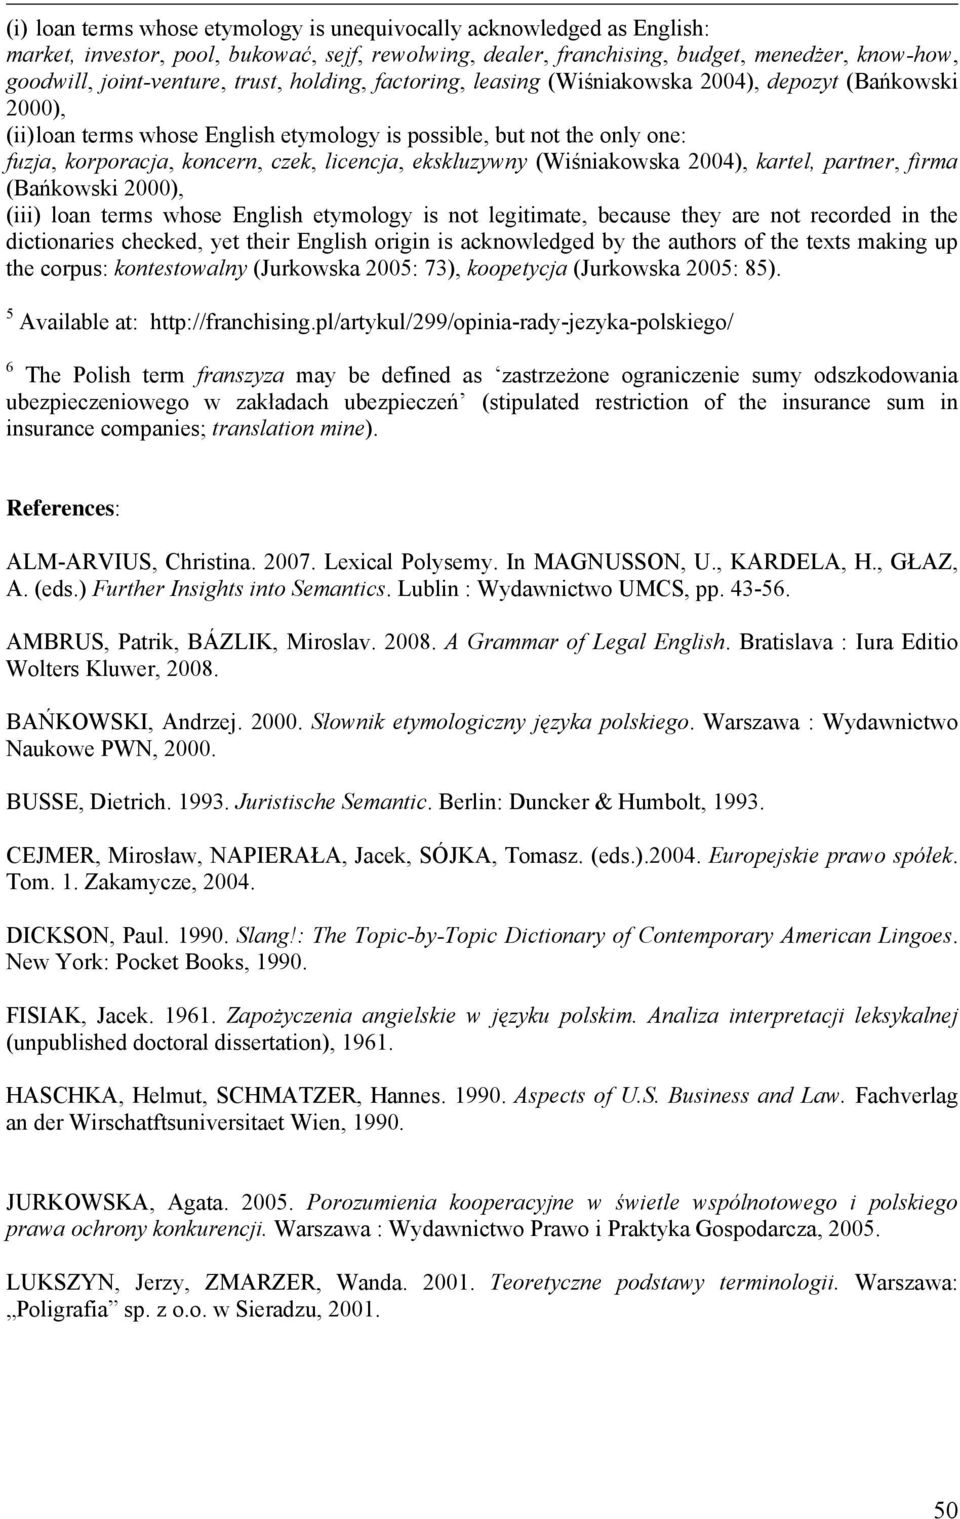 licencja, ekskluzywny (Wiśniakowska 2004), kartel, partner, firma (Bańkowski 2000), (iii) loan terms whose English etymology is not legitimate, because they are not recorded in the dictionaries